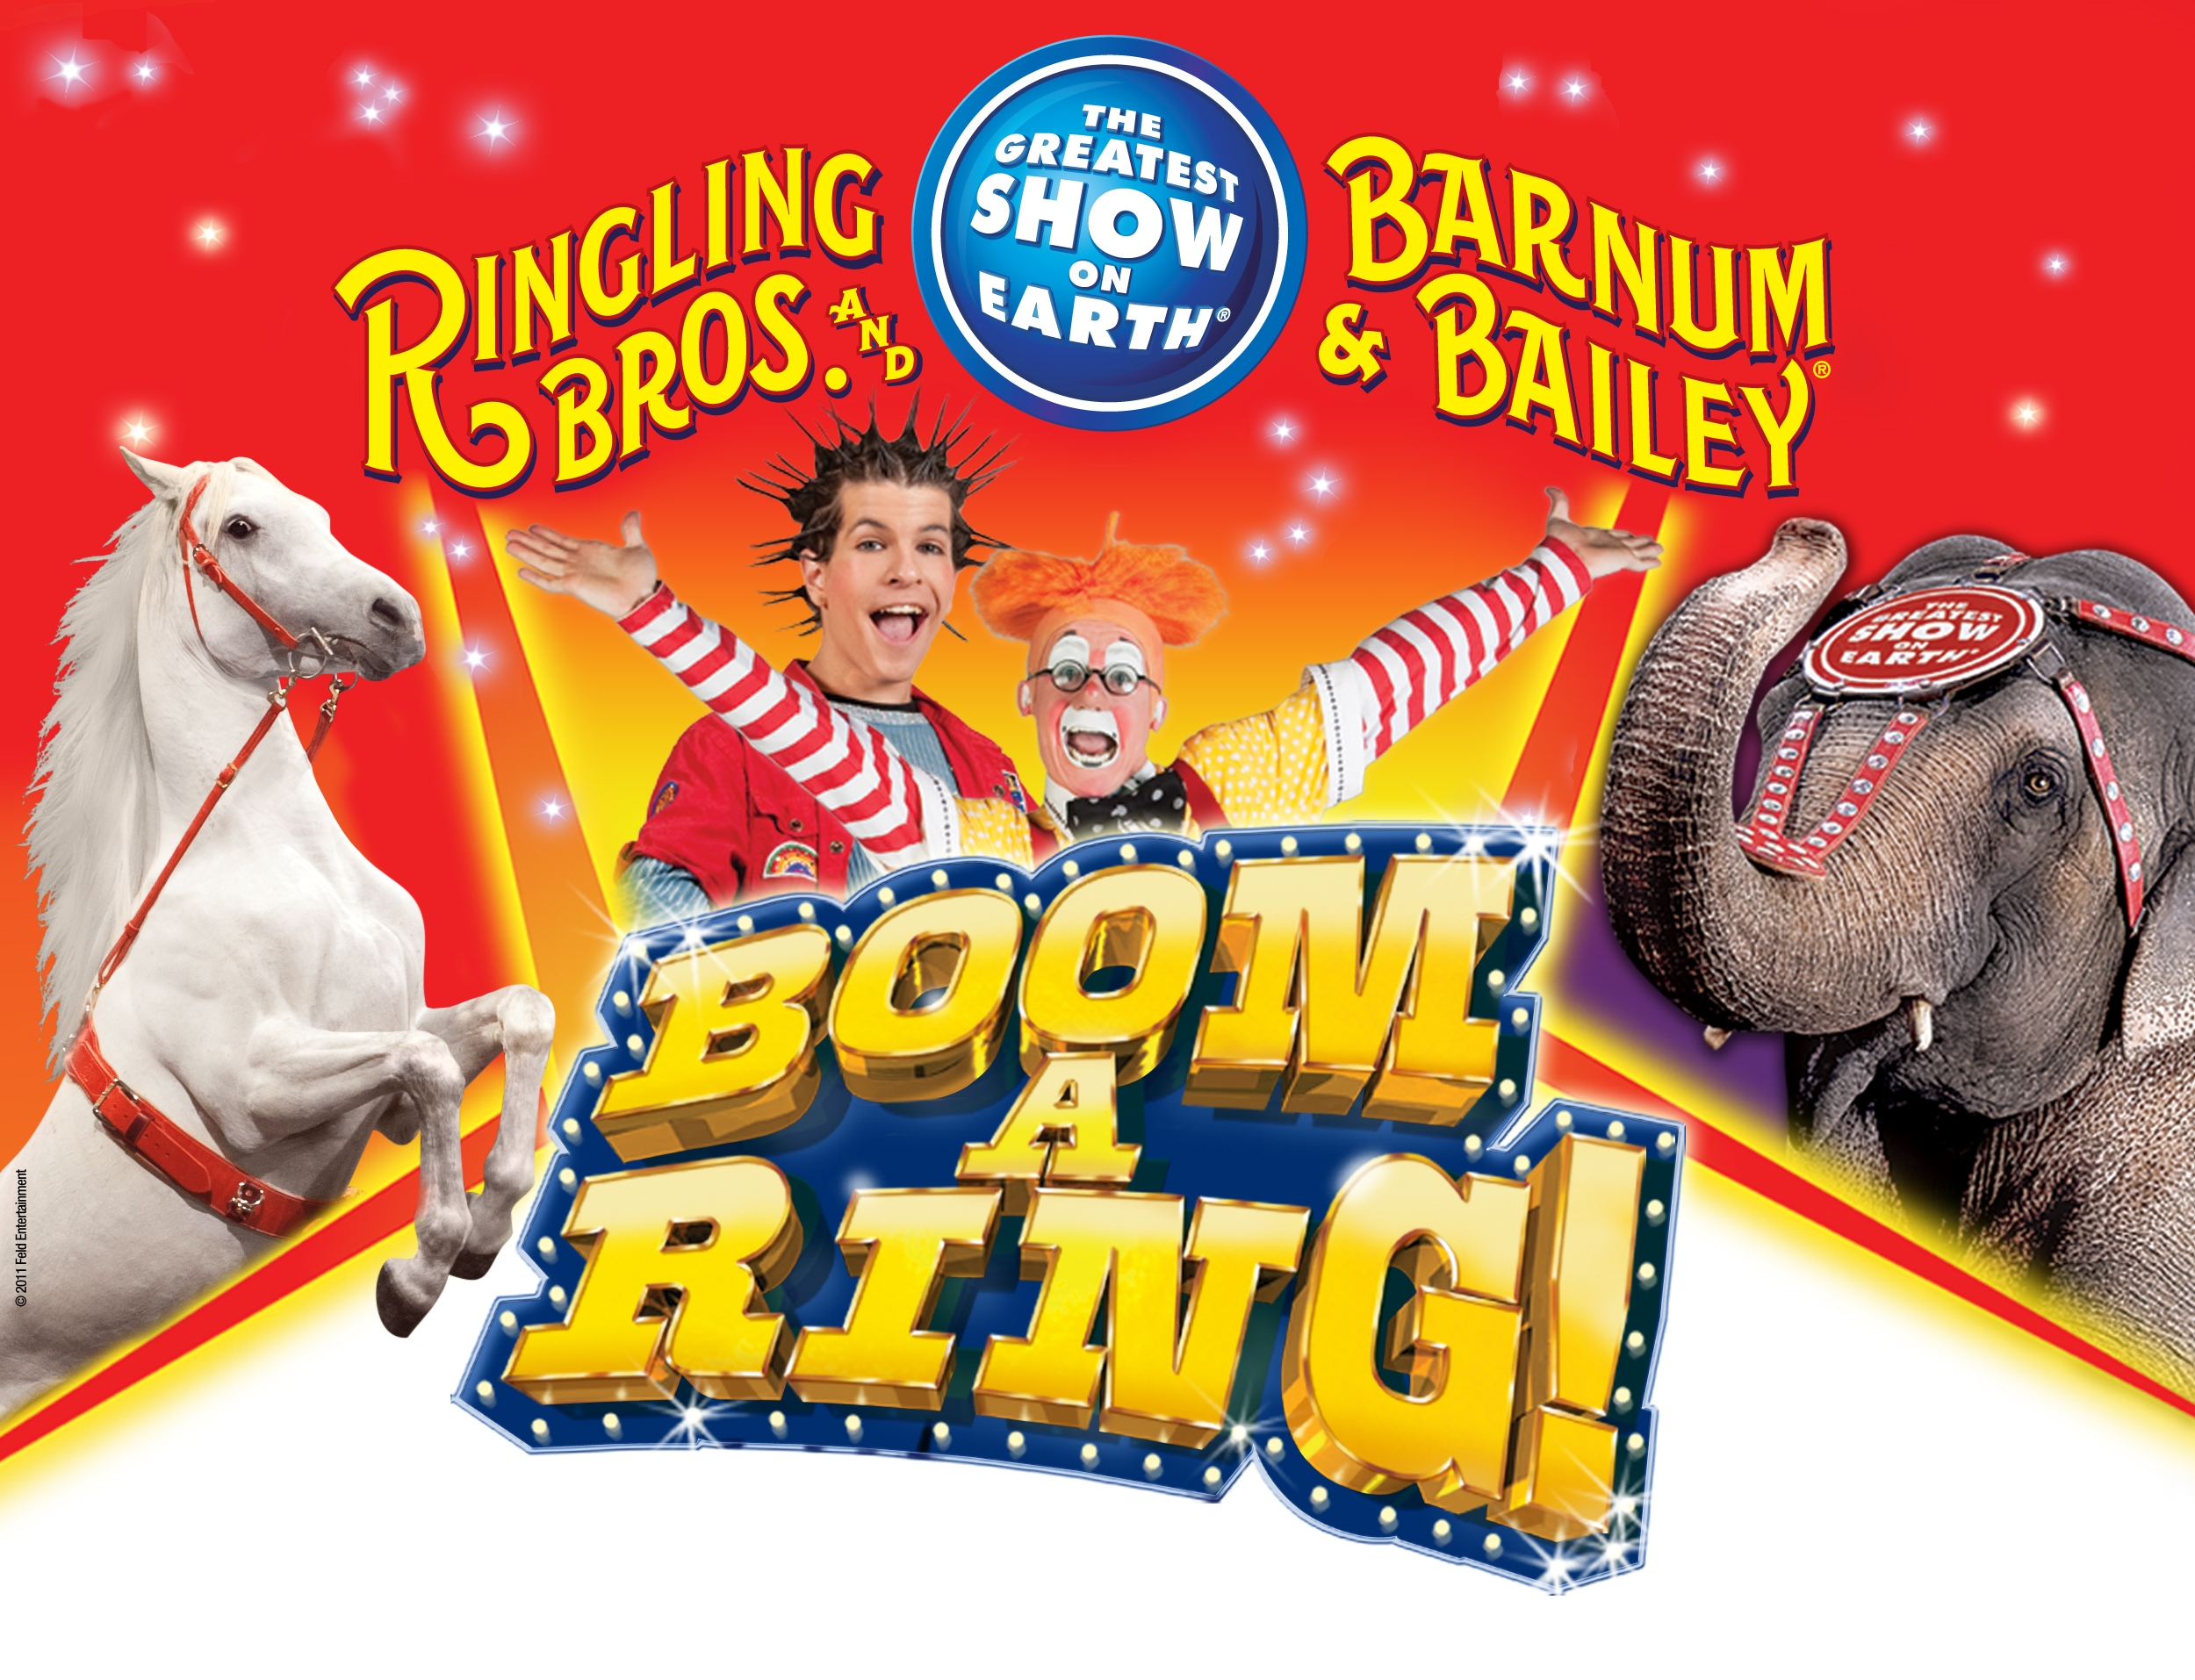 ringling bros and barnum bailey circus tour dates 2016. Black Bedroom Furniture Sets. Home Design Ideas